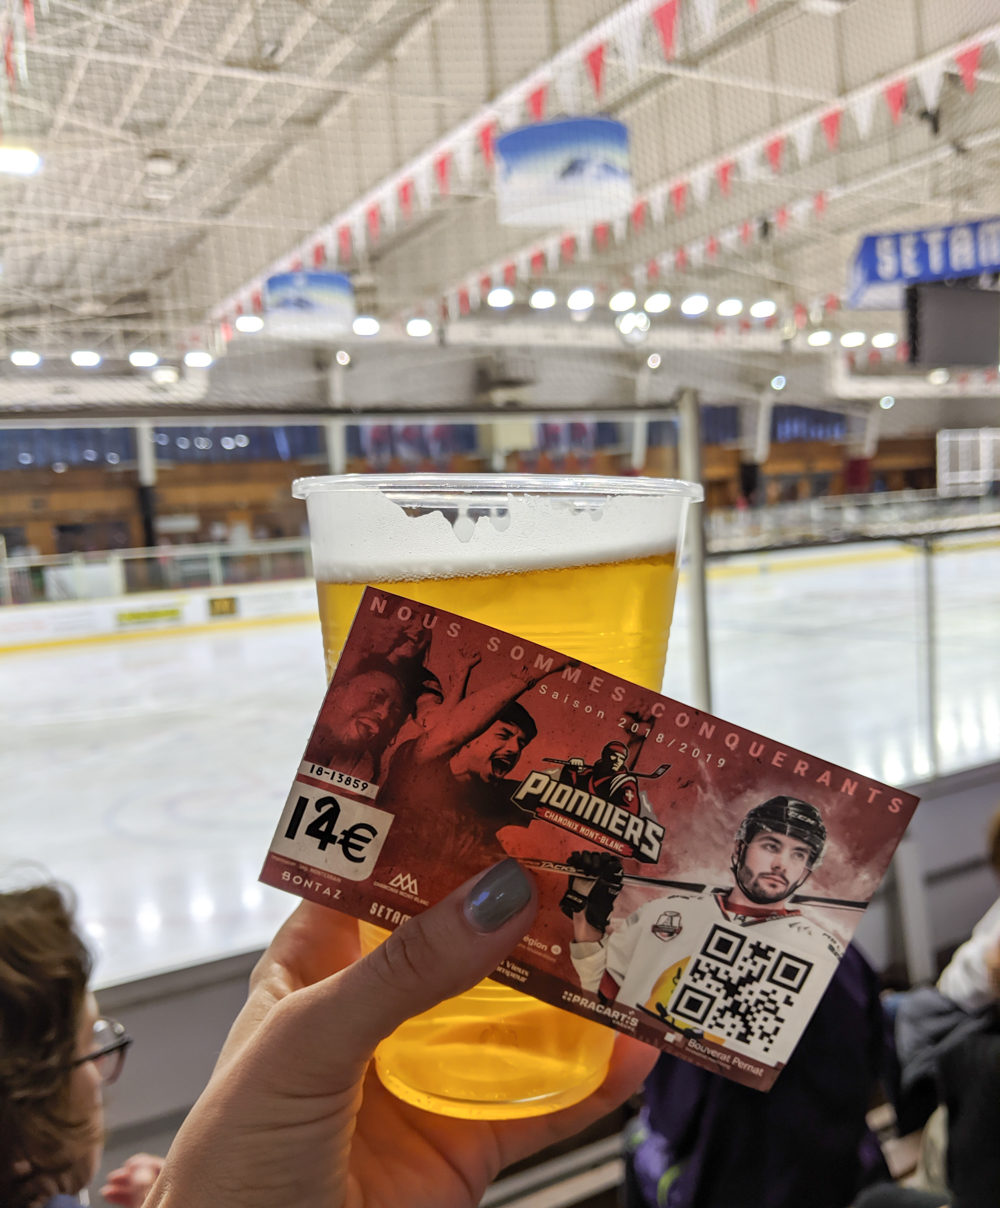 Awesome things to do in Chamonix in the summer: Alpine bucket list / Chamonix Pionniers hockey game and beer